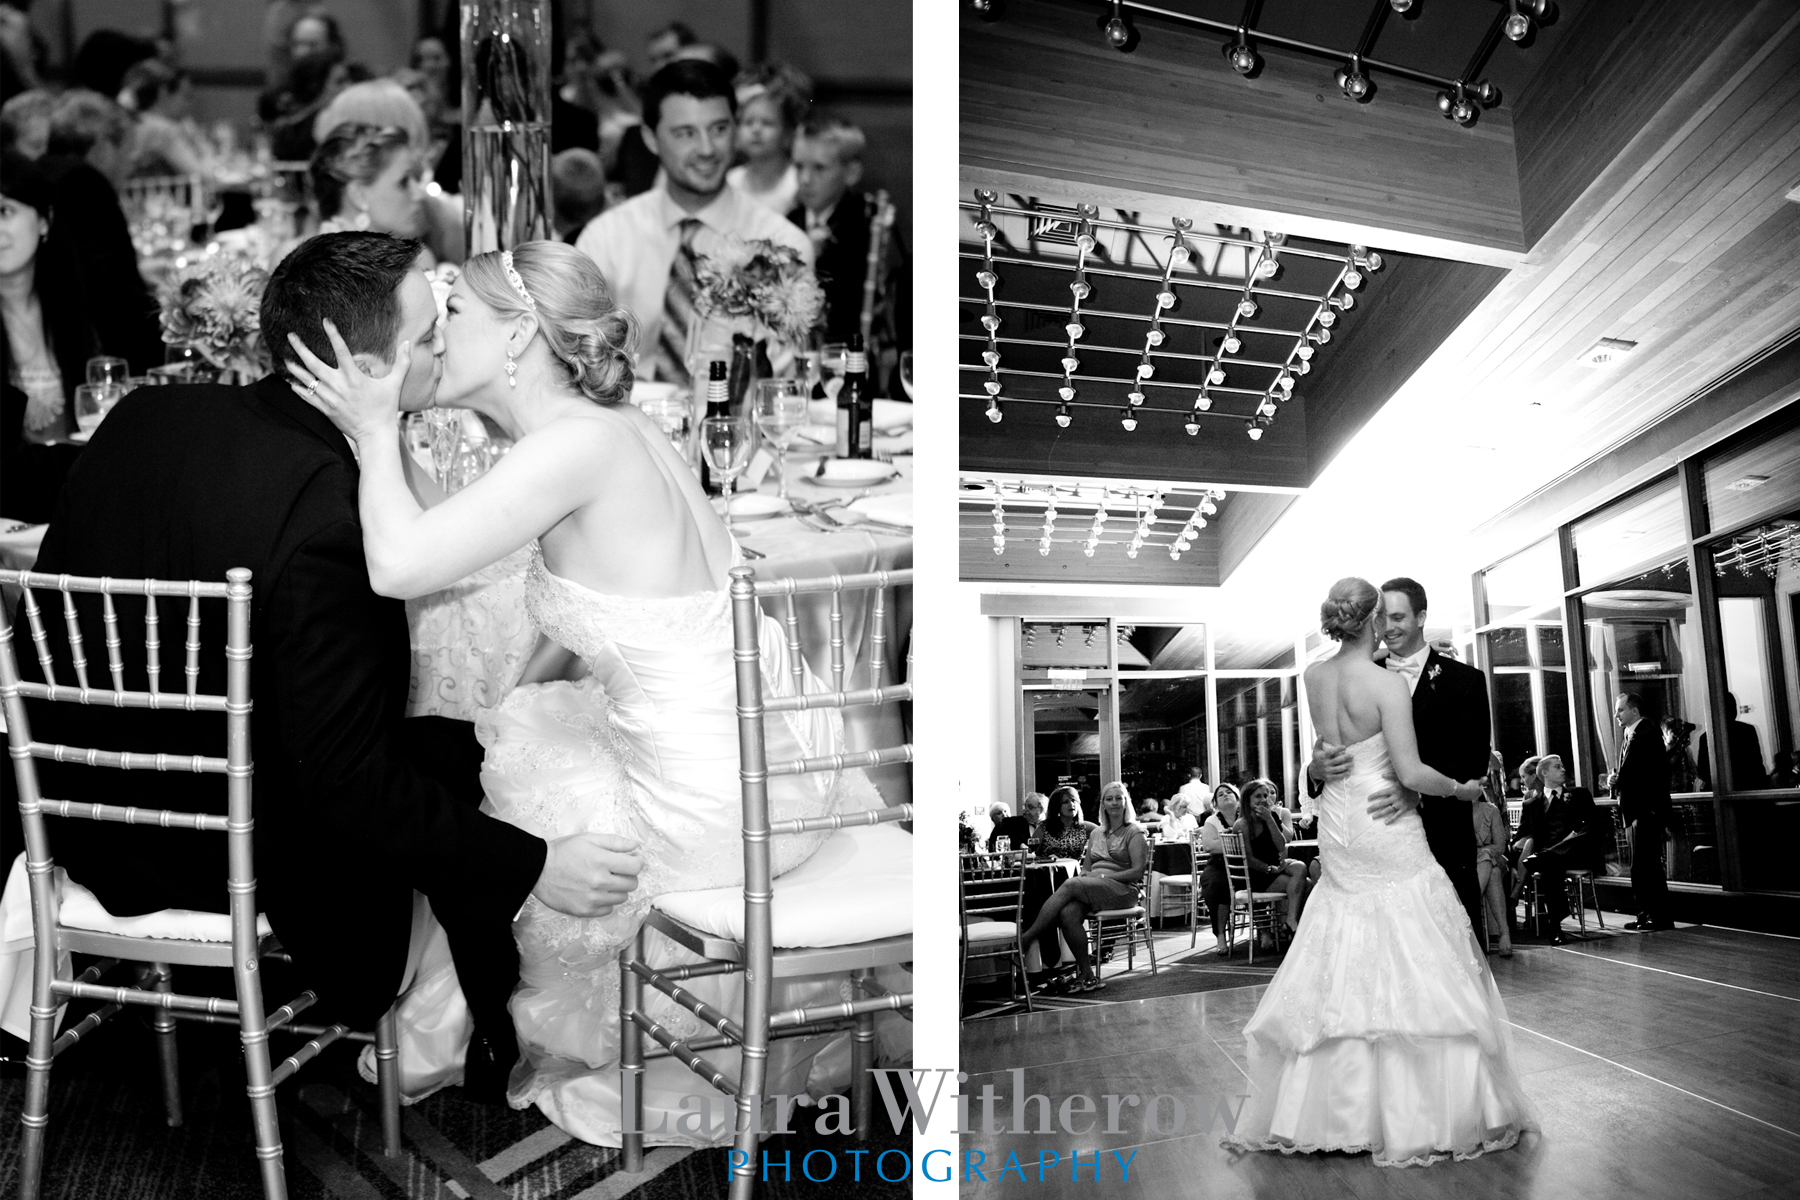 hyatt-lodge-chicago-wedding.jpg